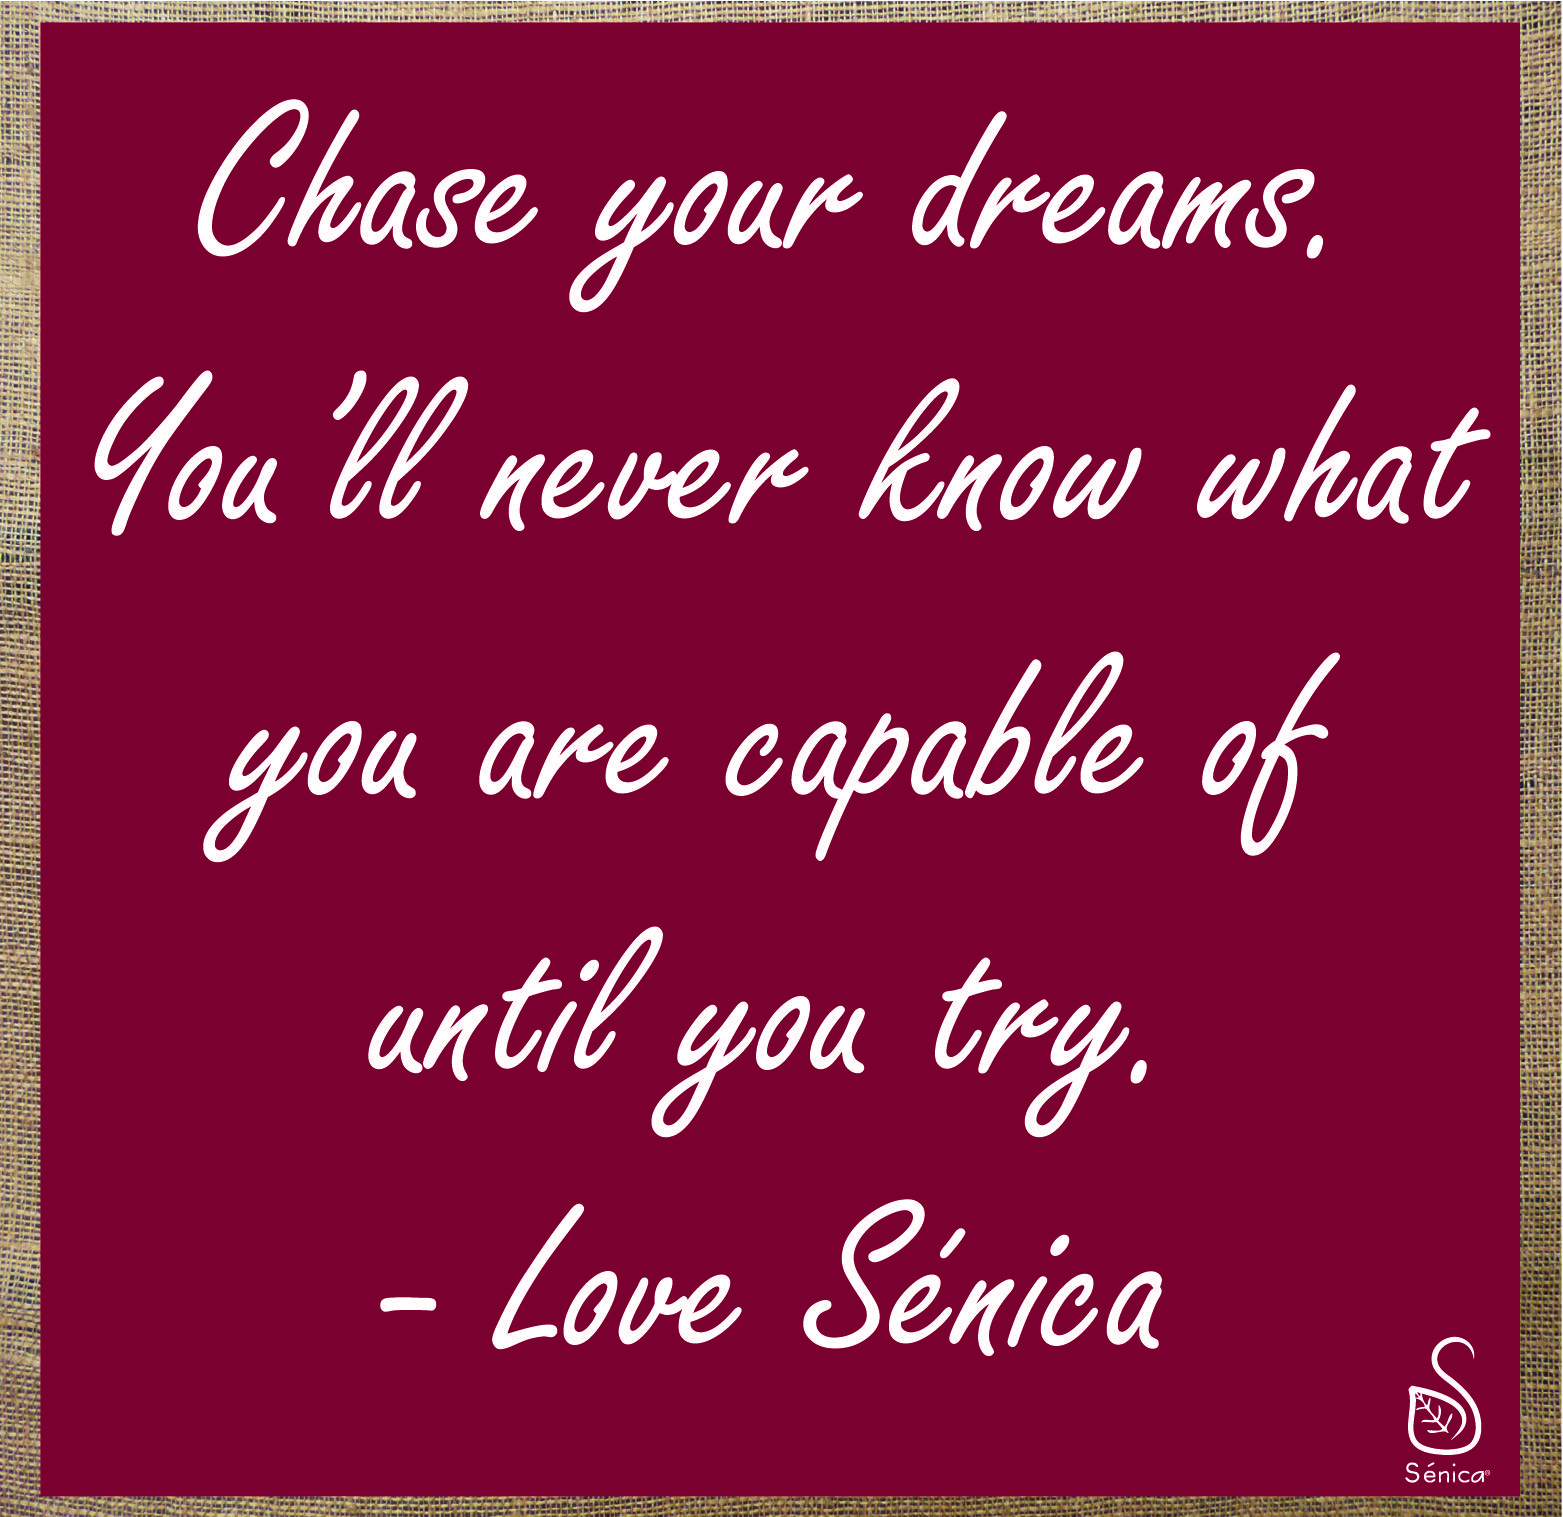 Chase.Your.Dreams. #inspiration #senicasays #reviveyourlife #pushyourself #motivation